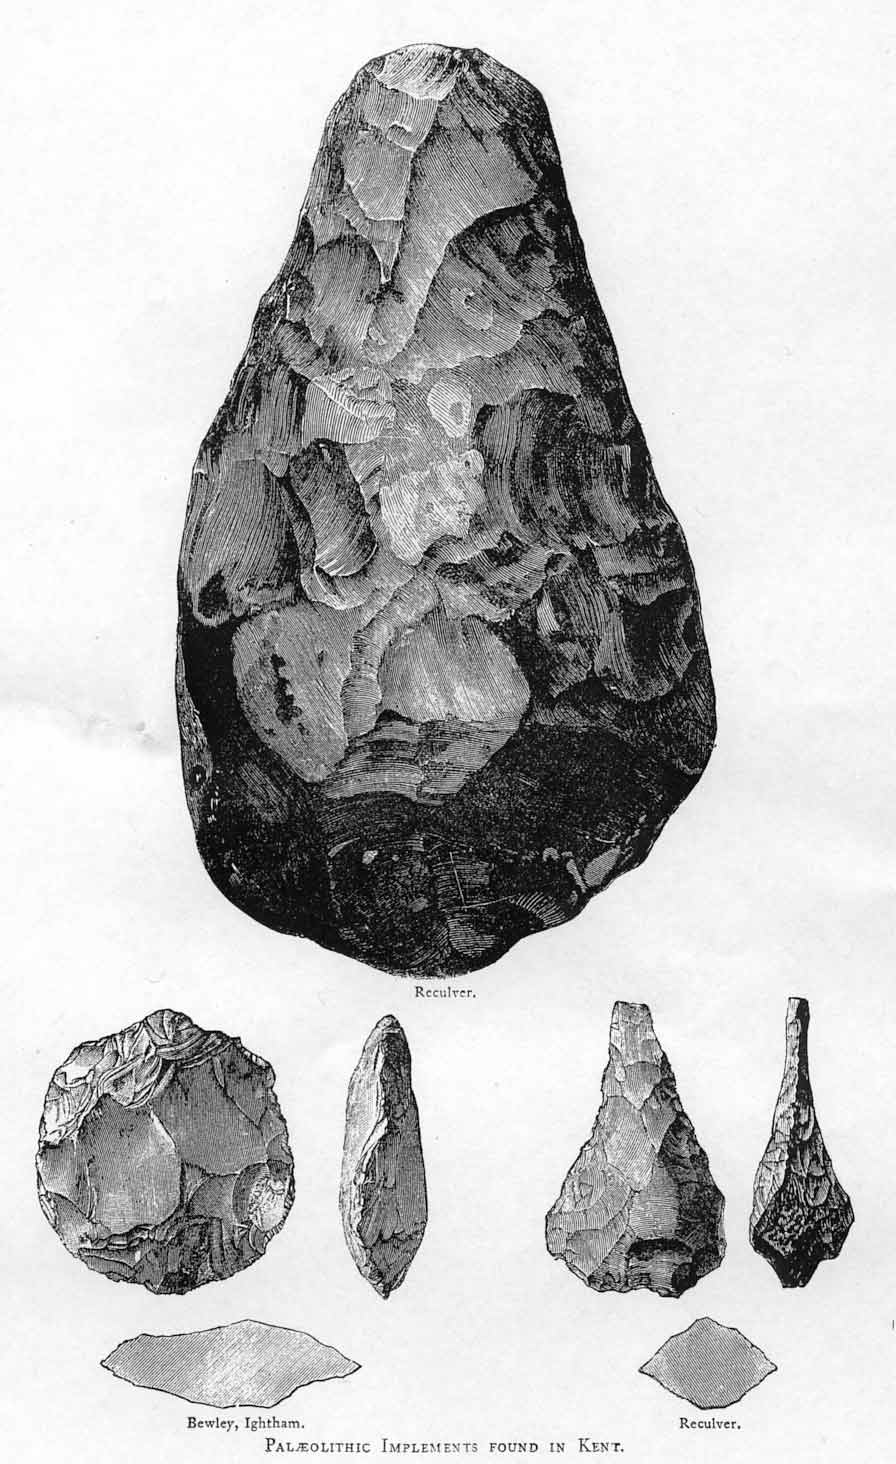 Acheulean hand-axes from Kent. The types shown are (clockwise from top) cordate, ficron and ovate.